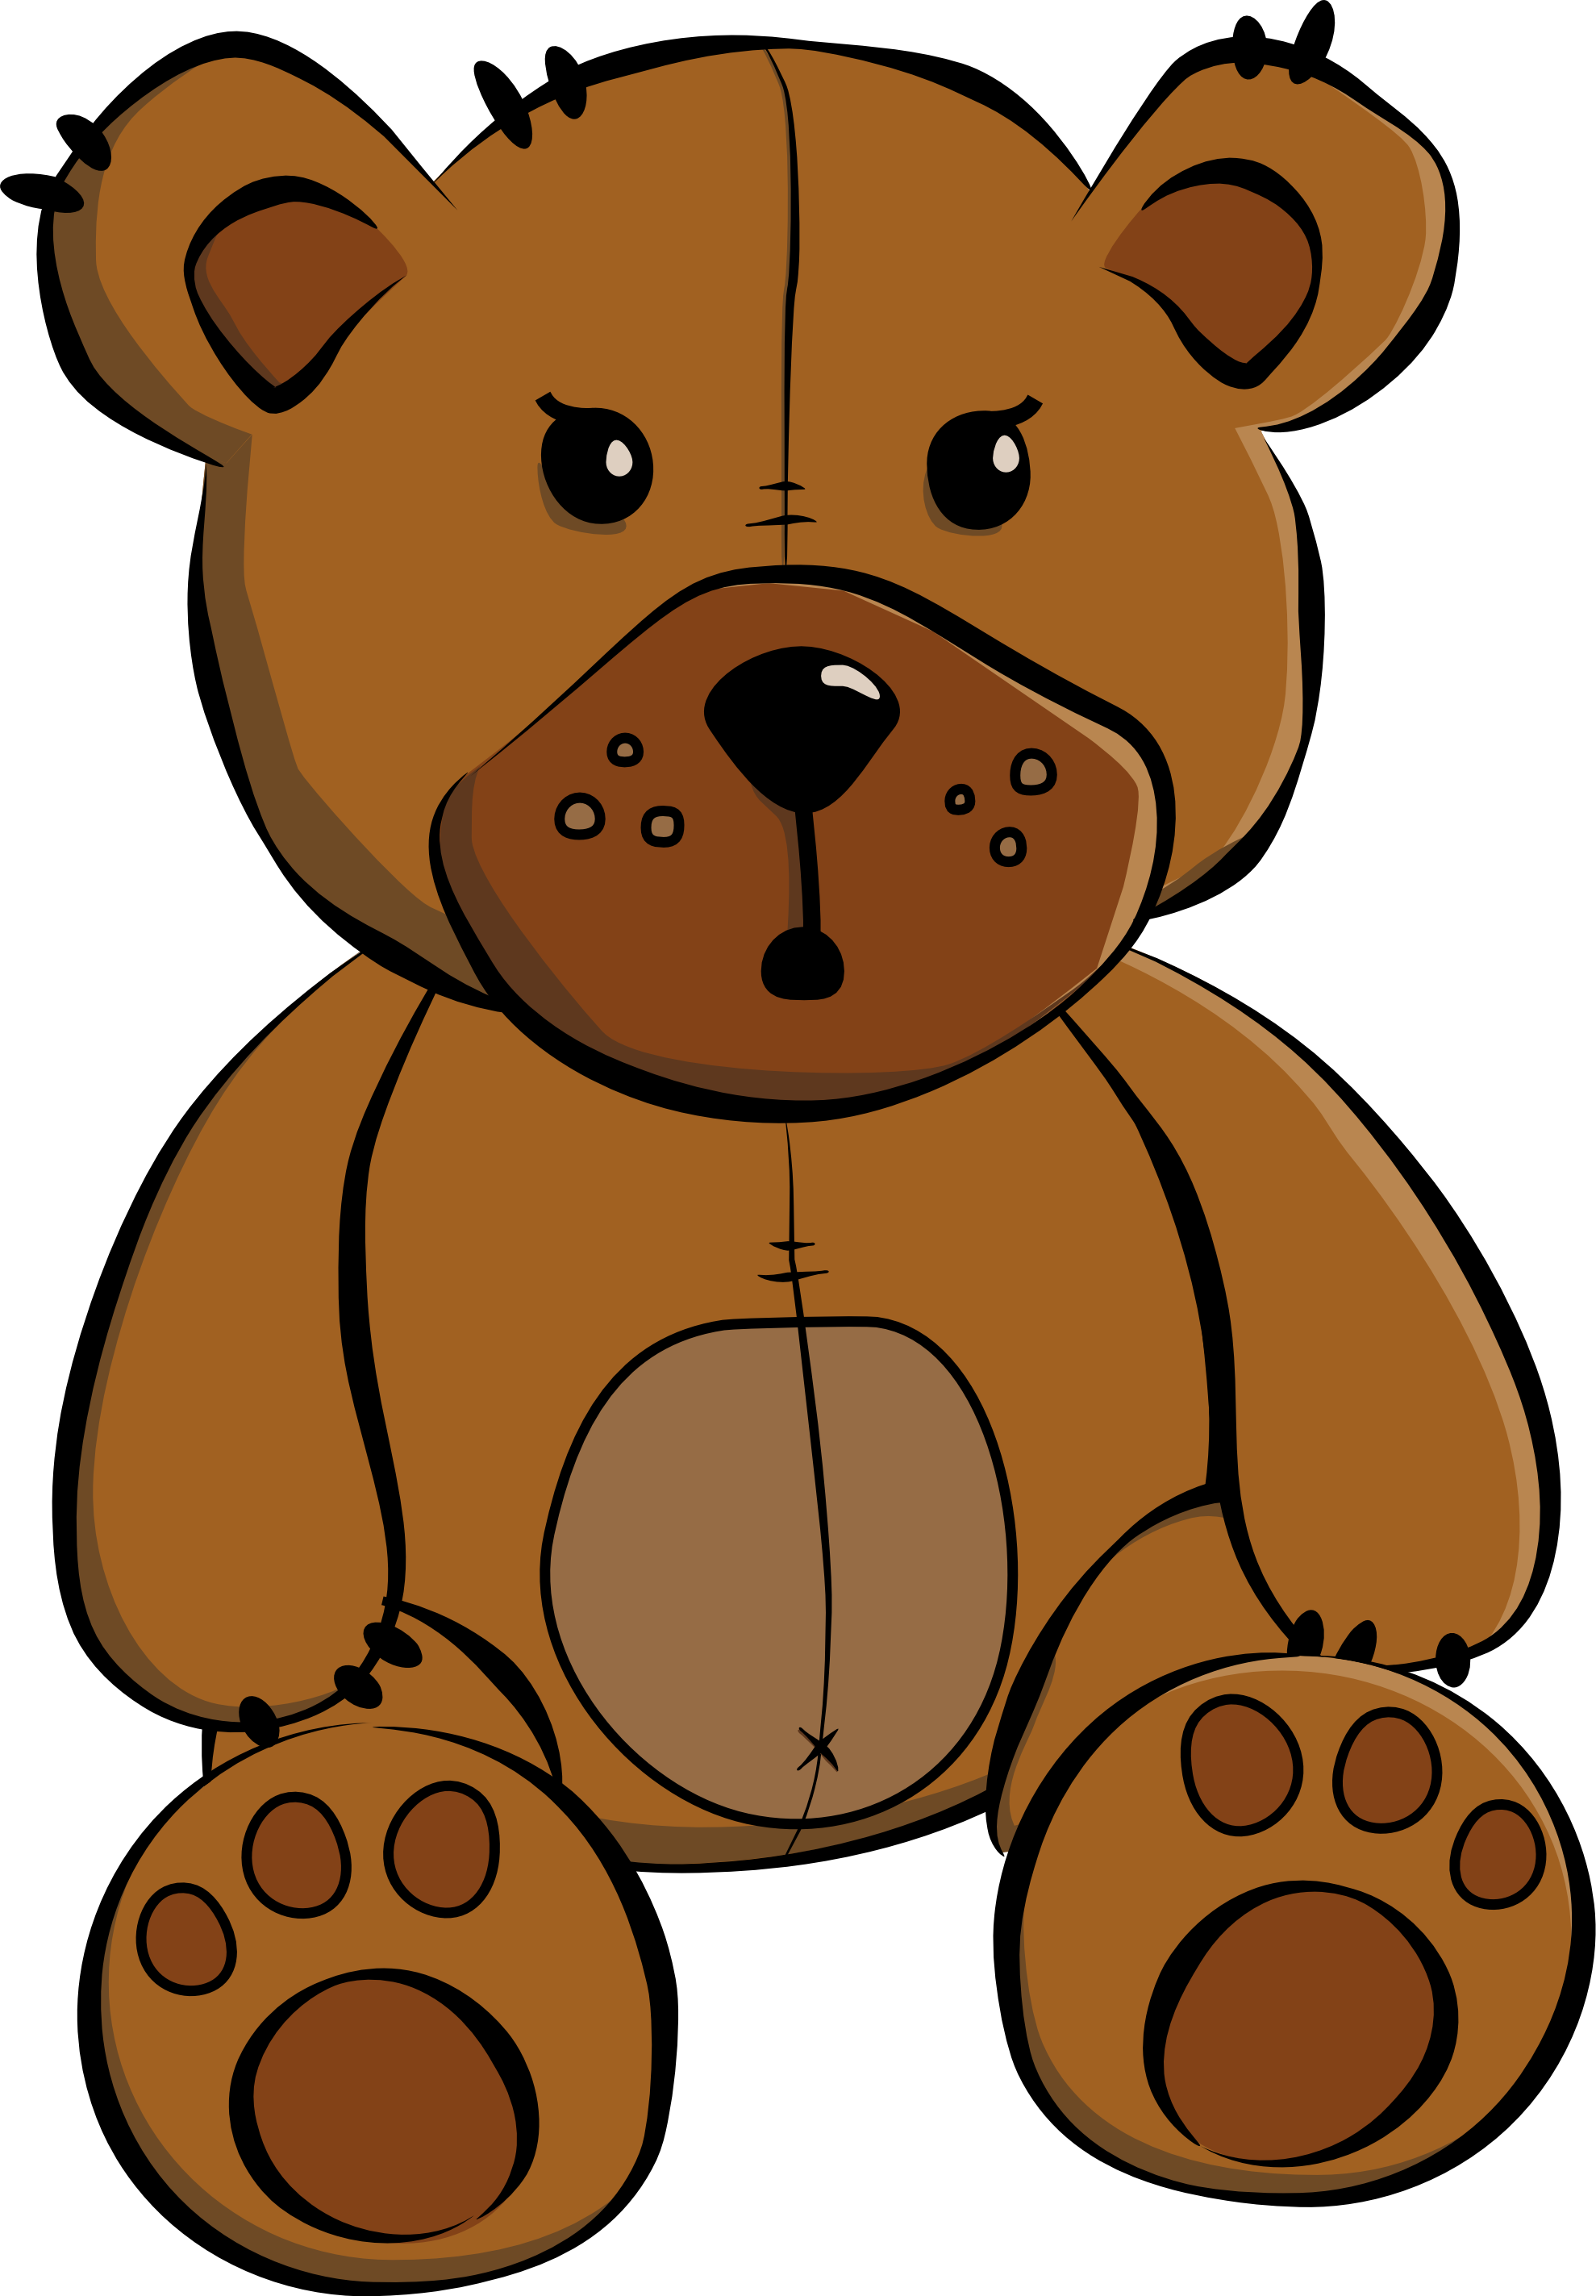 Brown Bear clipart #1, Download drawings